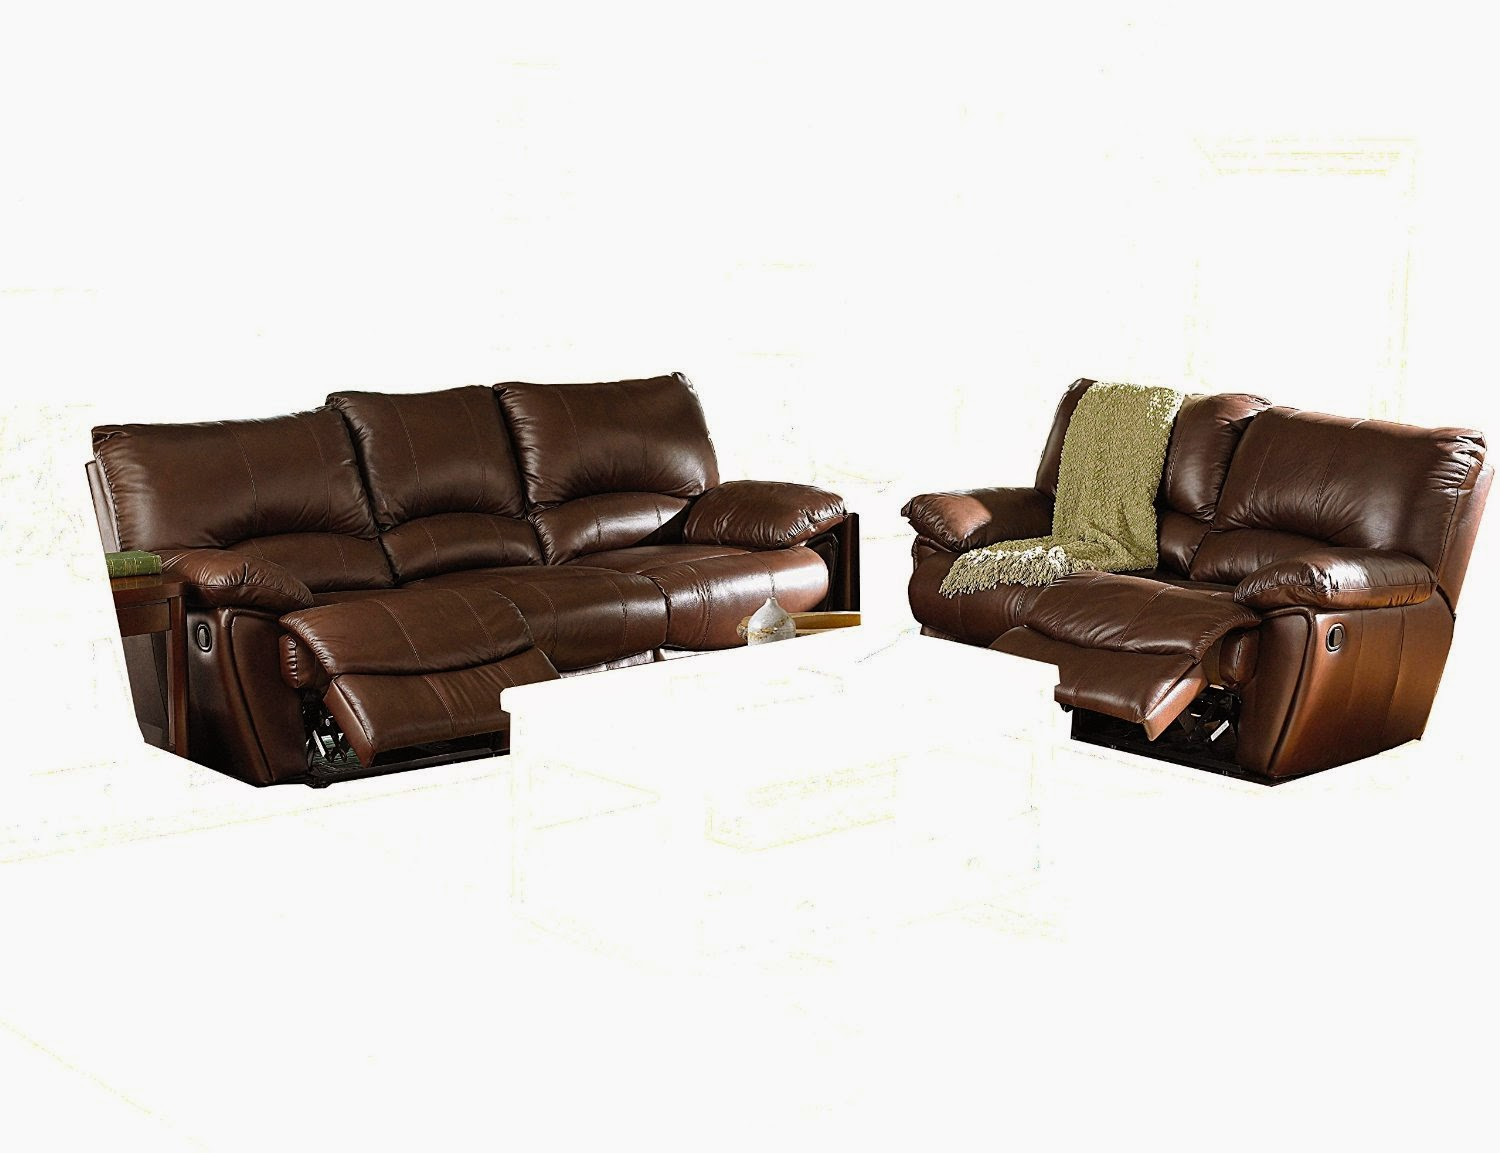 Best Sectional Sofas For The Money Leather Sofa Set 3 1 India Reclining Whitaker Brown